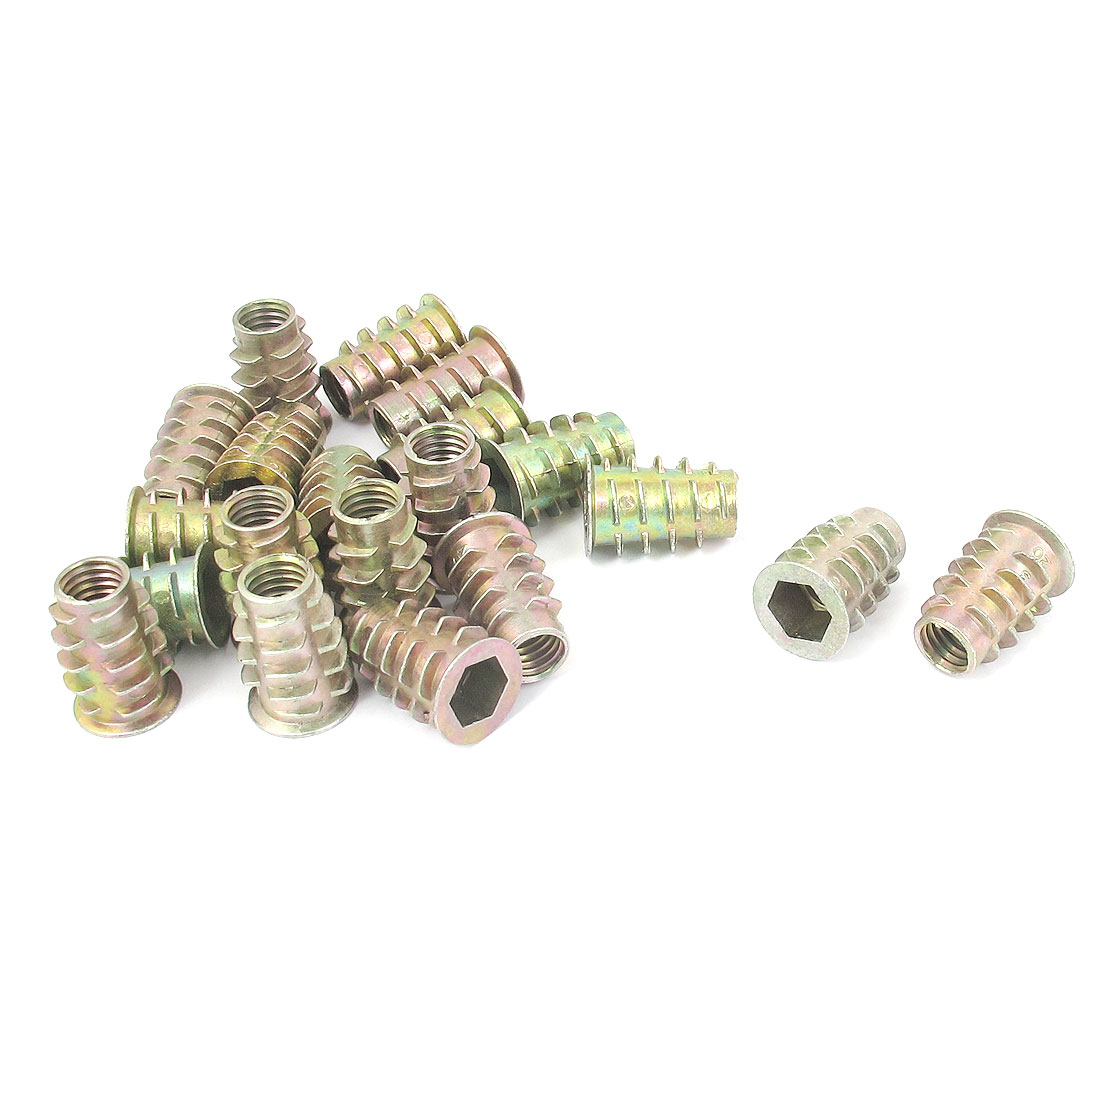 20 Pcs M8x20mm Zinc Plated Hex Socket Screw in Thread Insert Nut for Wood